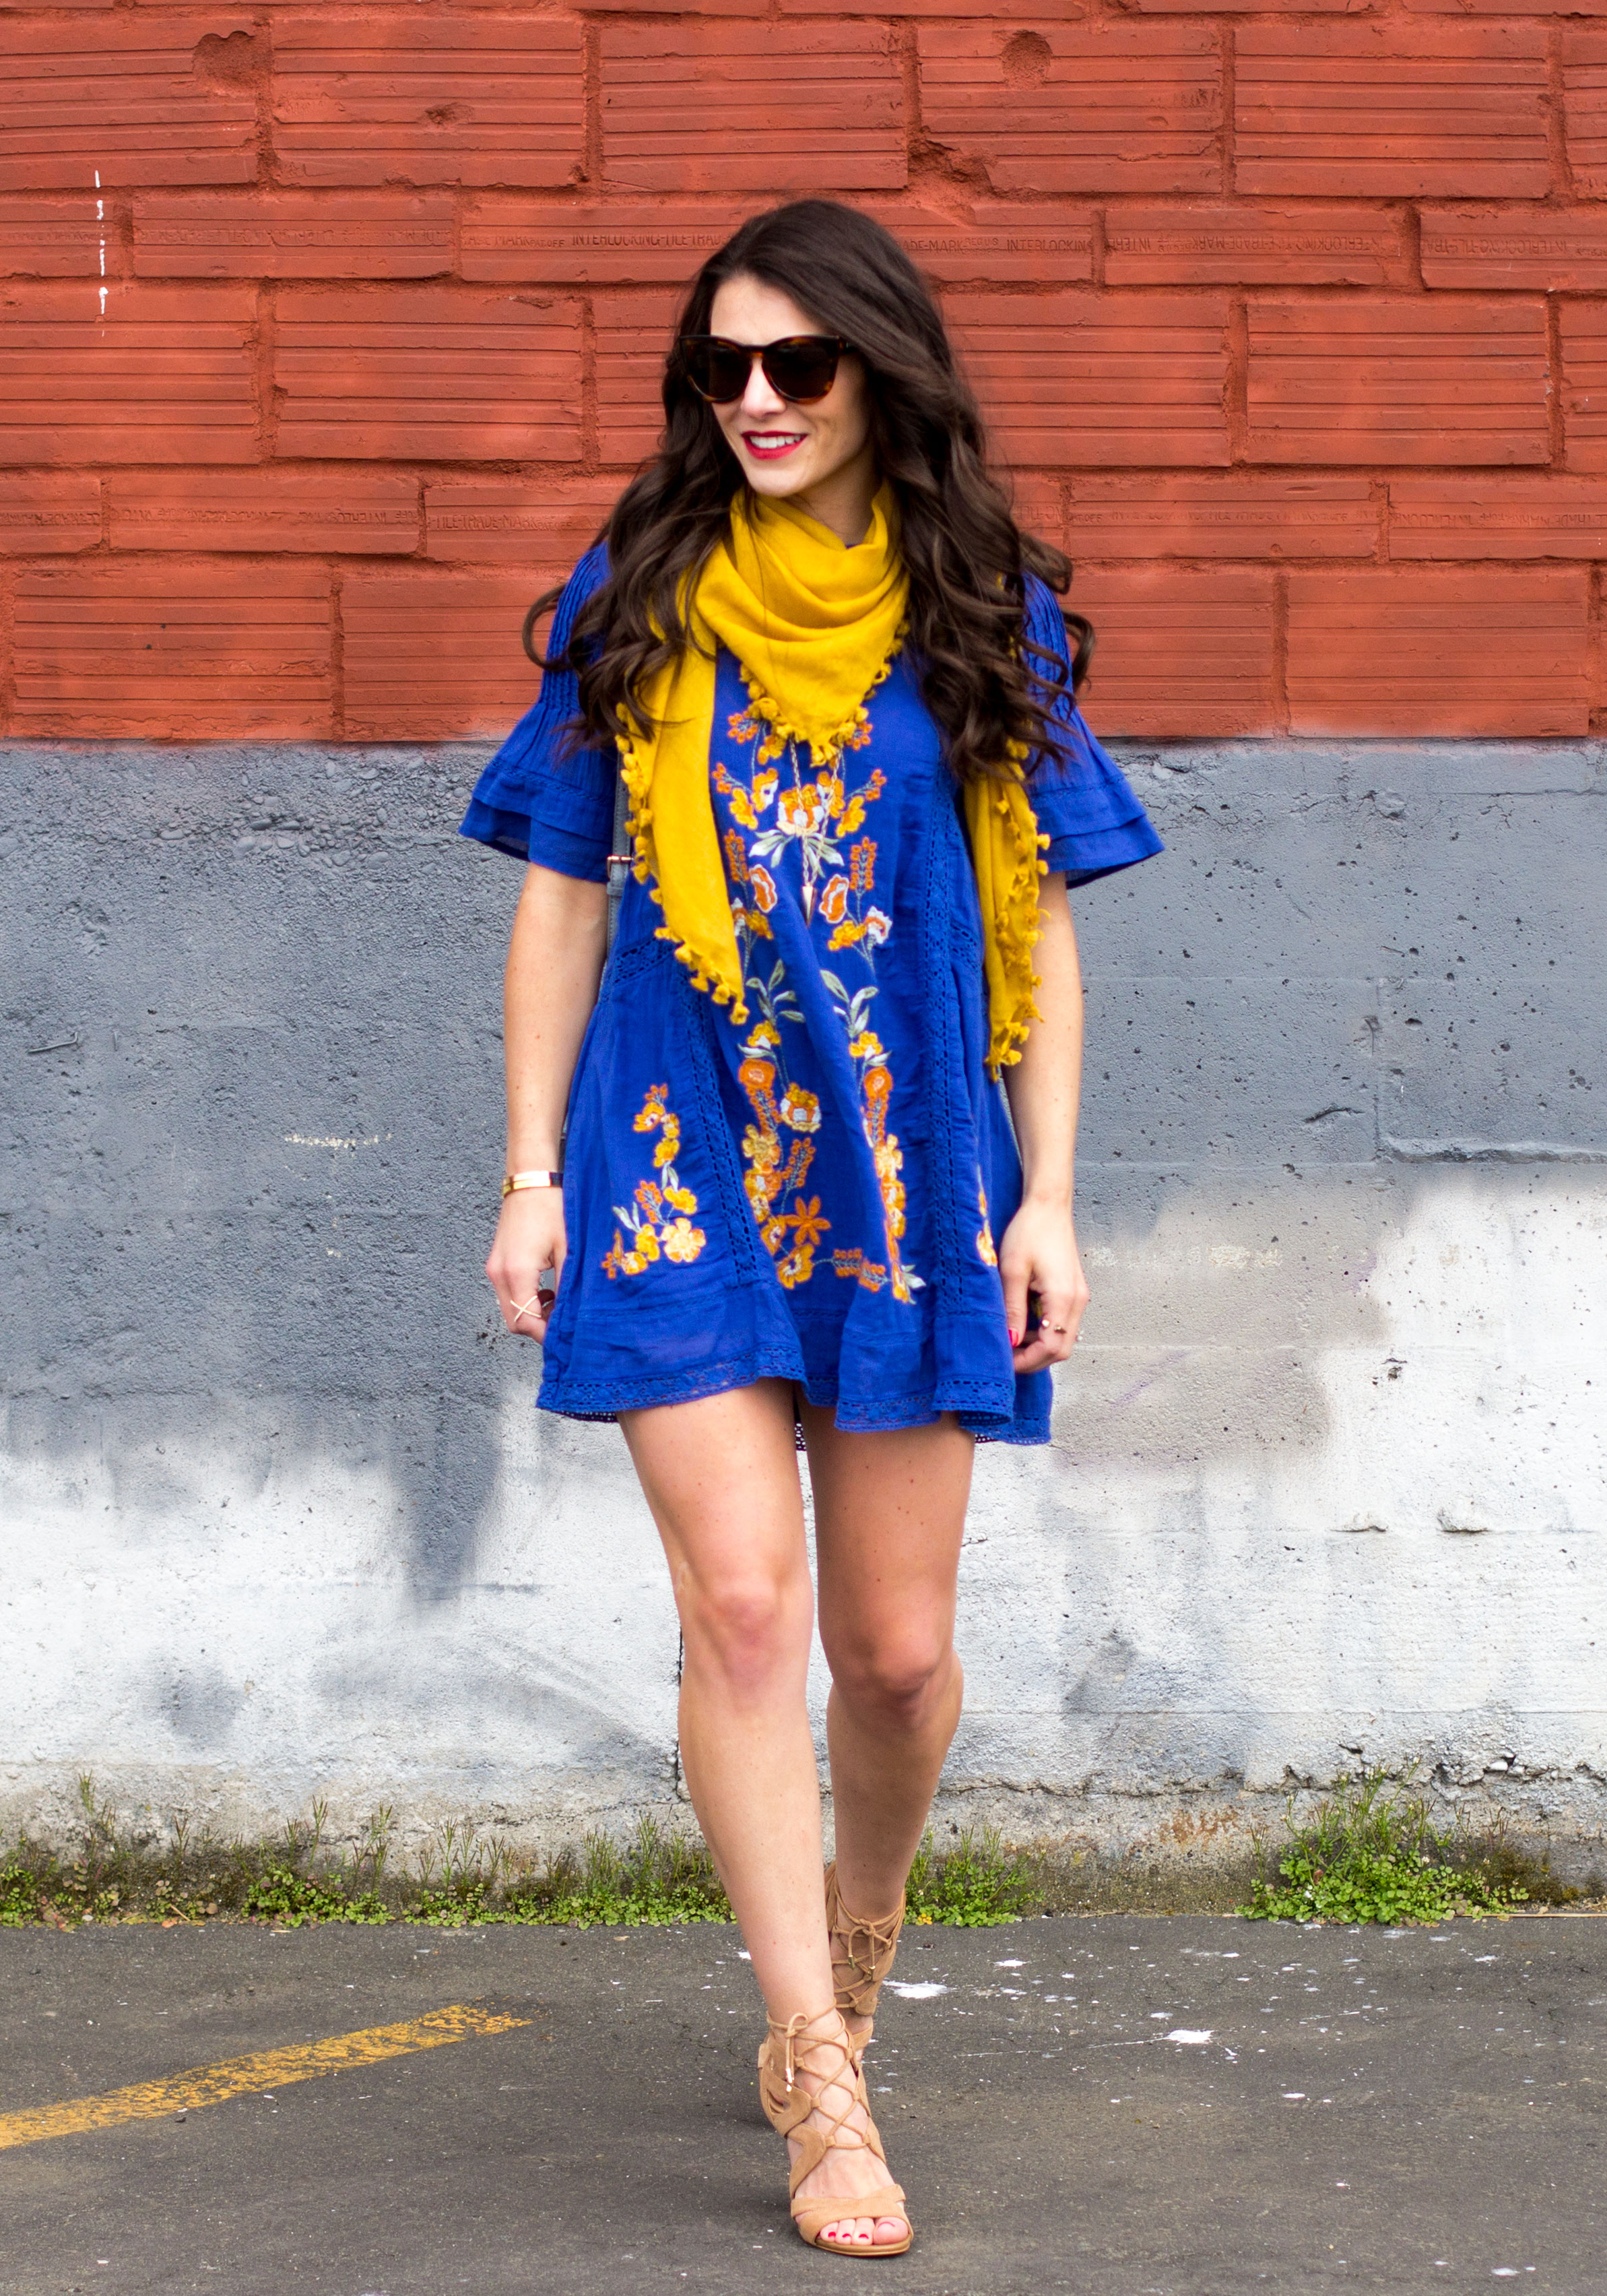 "Free People Victorian Mini Dress, Sam Edelman Yardley Sandals, Lespecs ""Jealous Games"", Blue Bucket Bag, Easy Summer Dress"